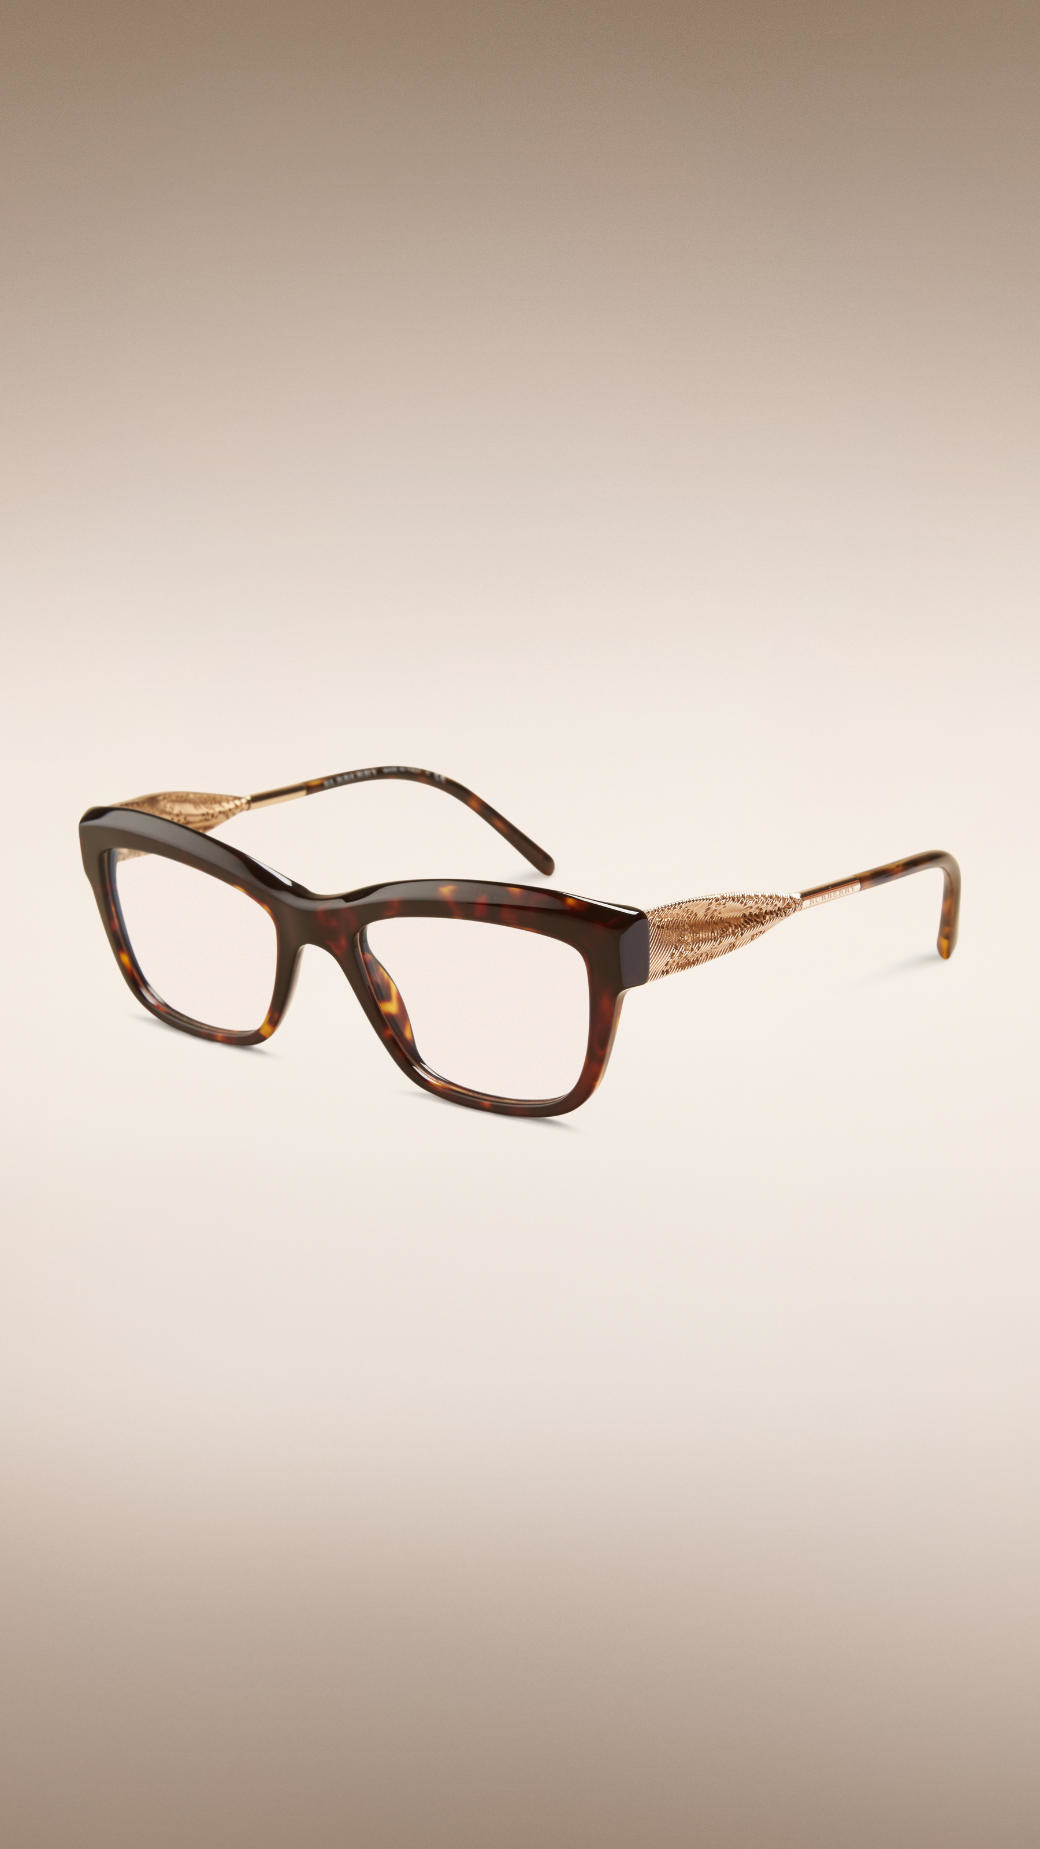 95606790c7 Burberry Gabardine Lace Collection Cat-eye Optical Frames - Lyst